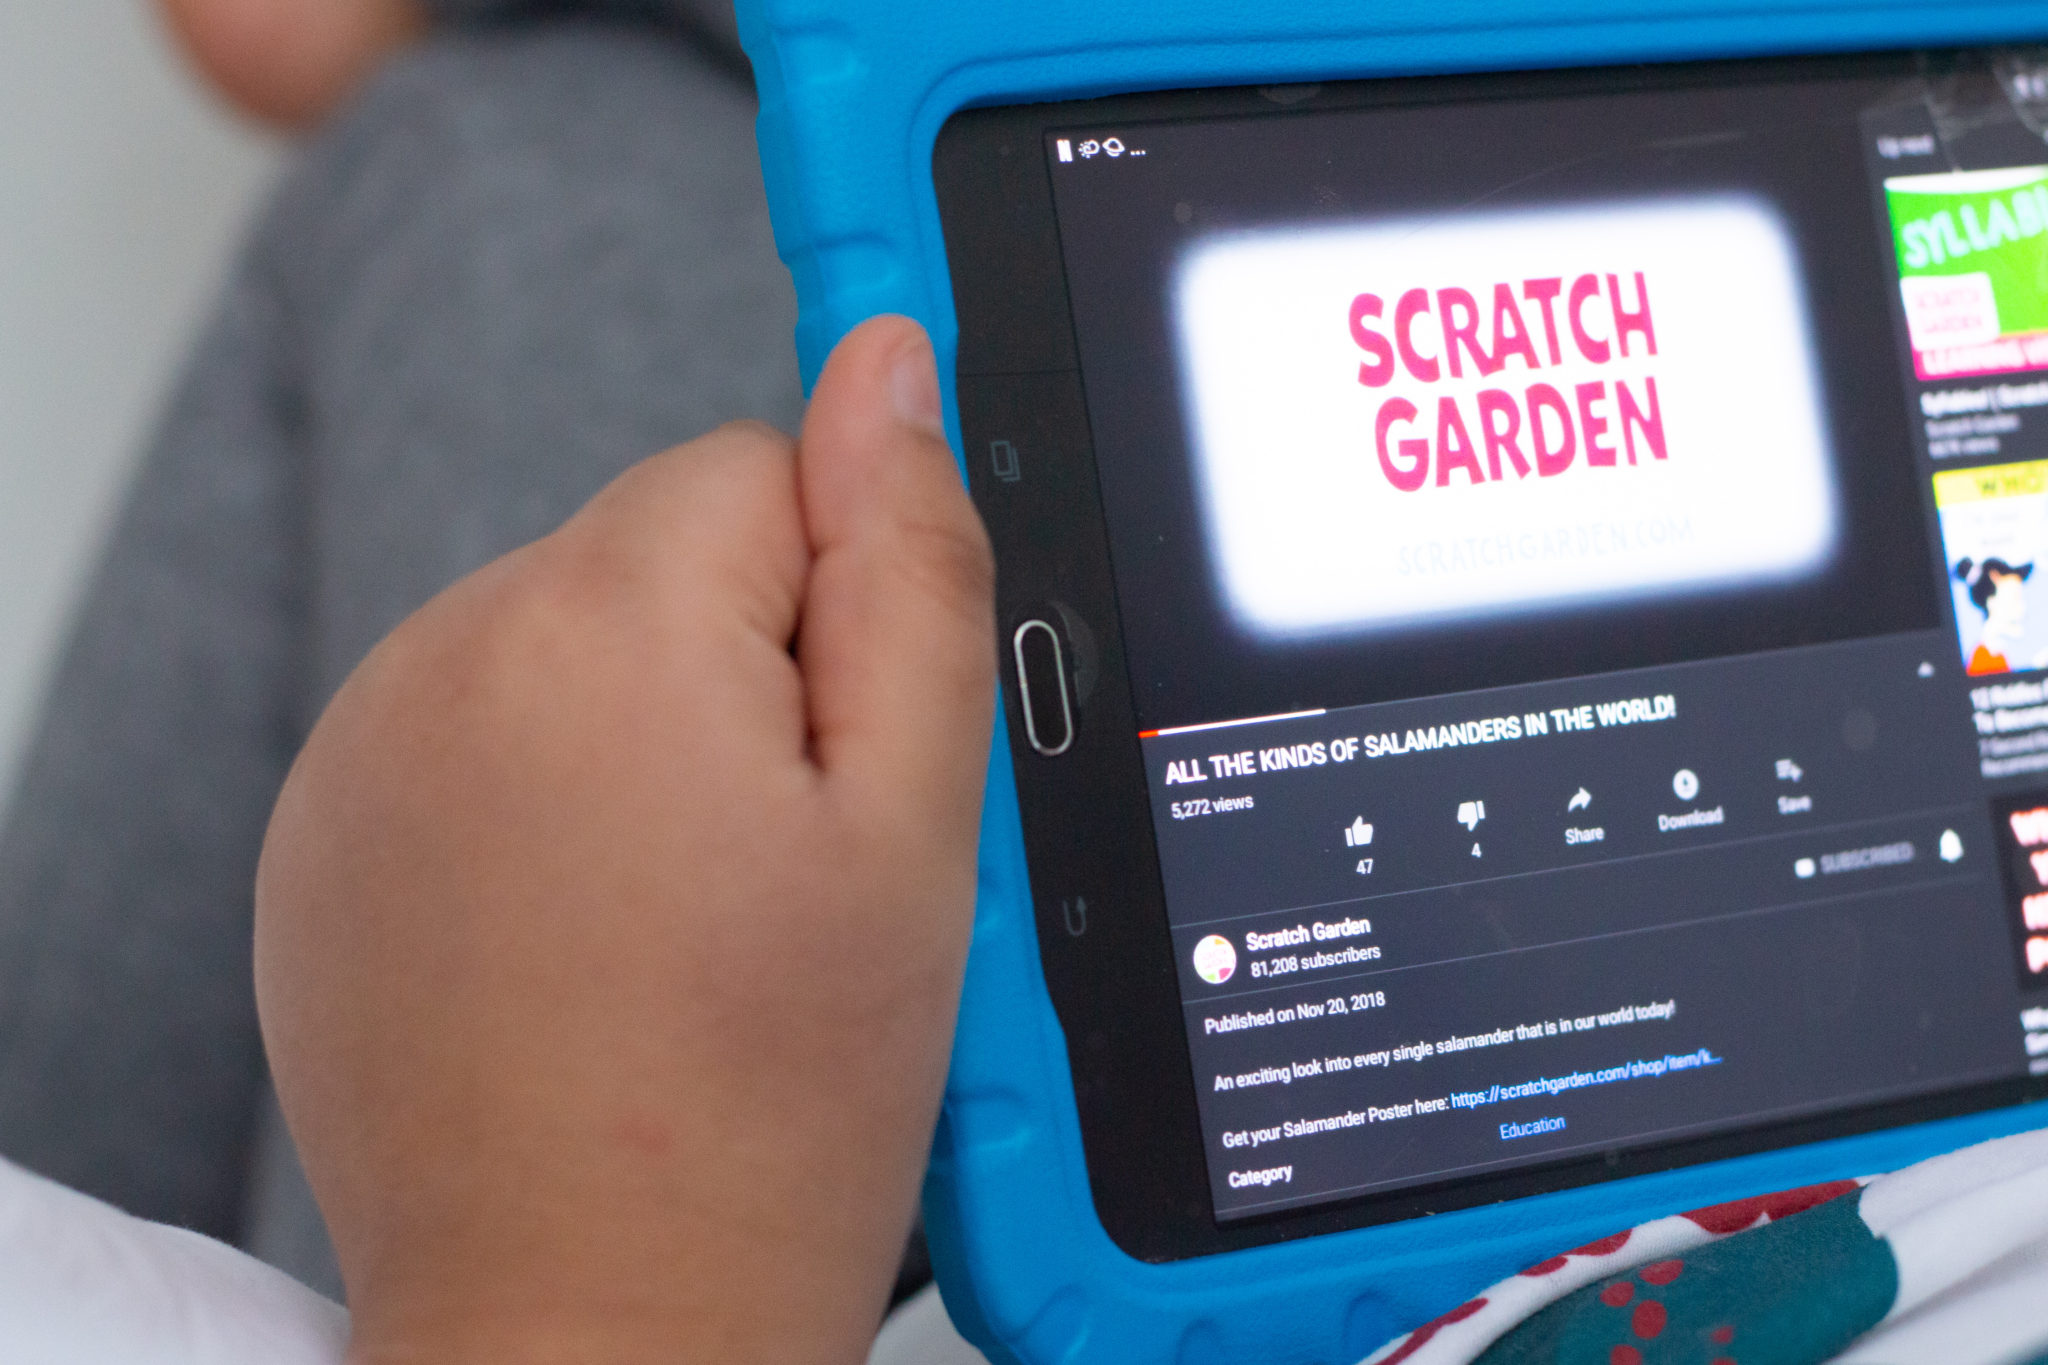 Using Music And Songs to Enhance Learning | Scratch Garden